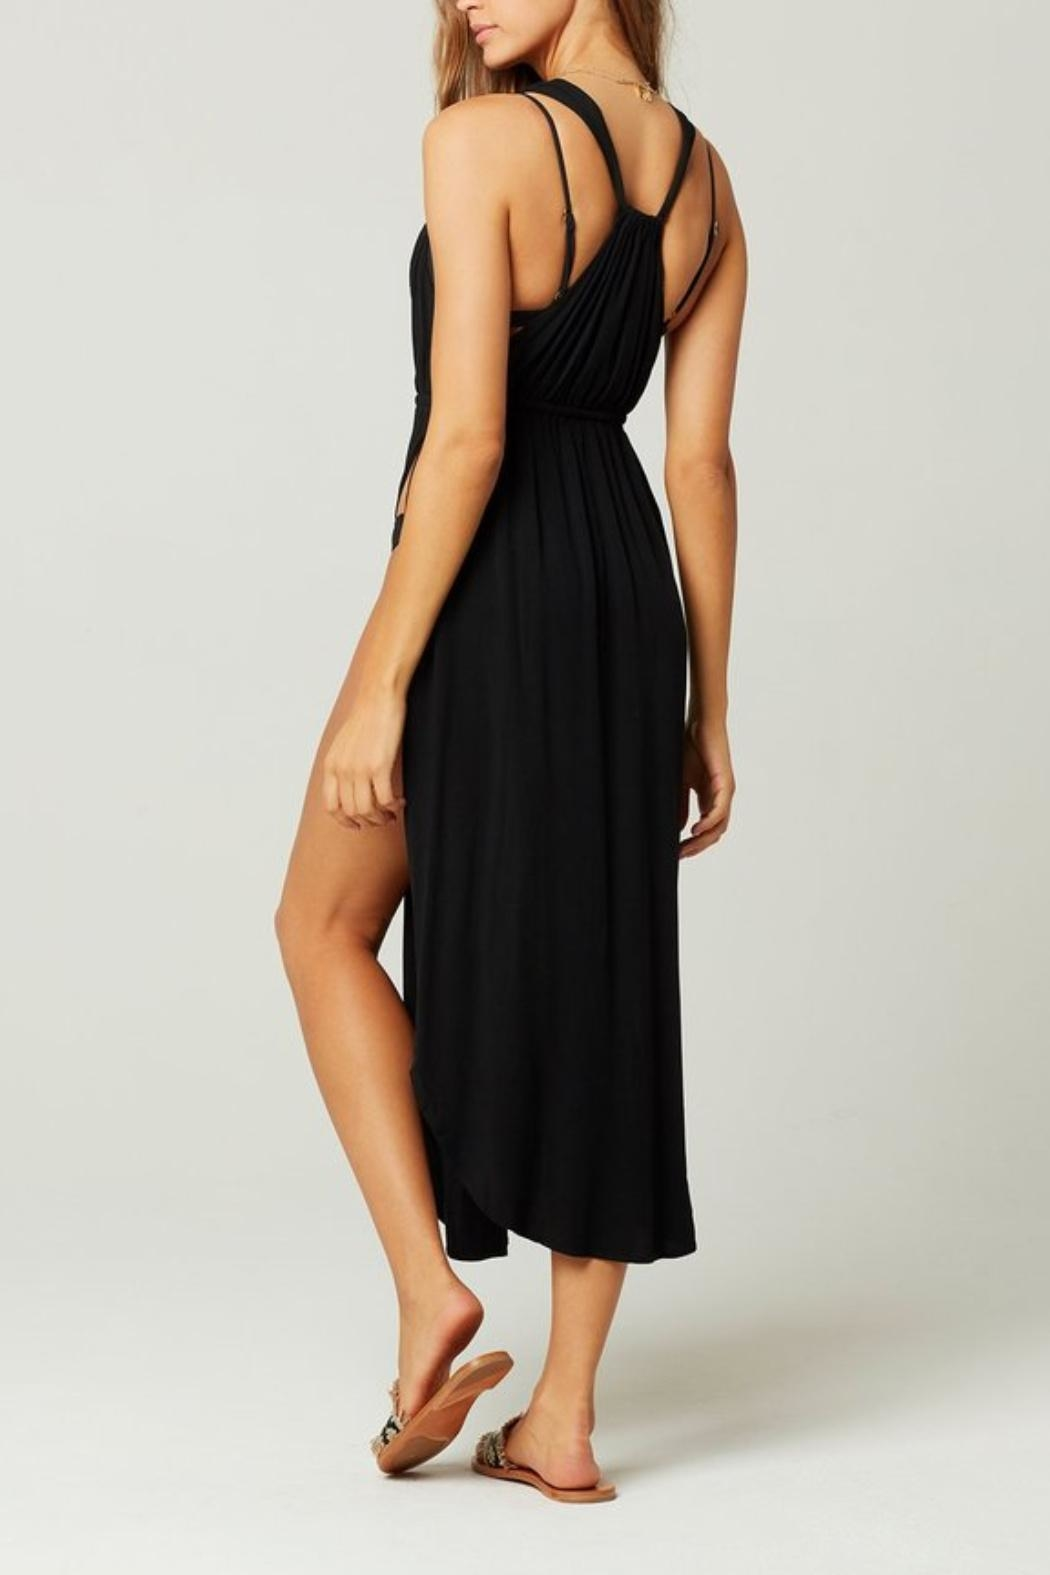 L SPACE Kenzie Cover-Up Slit-Dress - Front Full Image